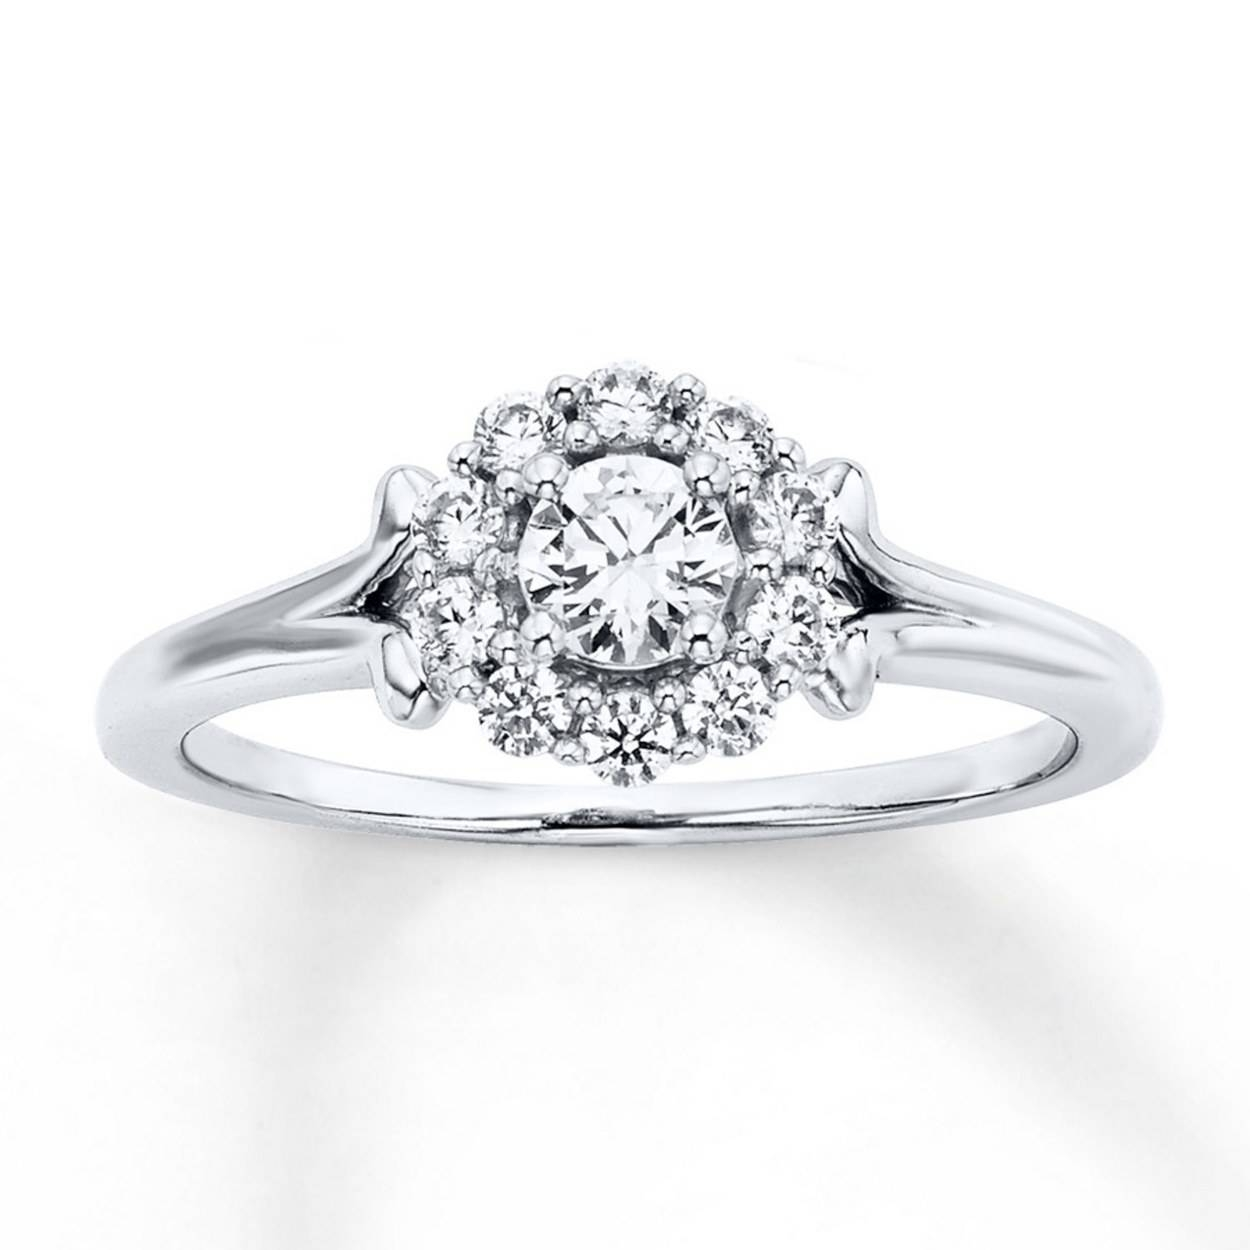 Affordable Engagement Rings Under $1,000 | Glamour With Trinity Diamond Engagement Rings (Gallery 13 of 15)